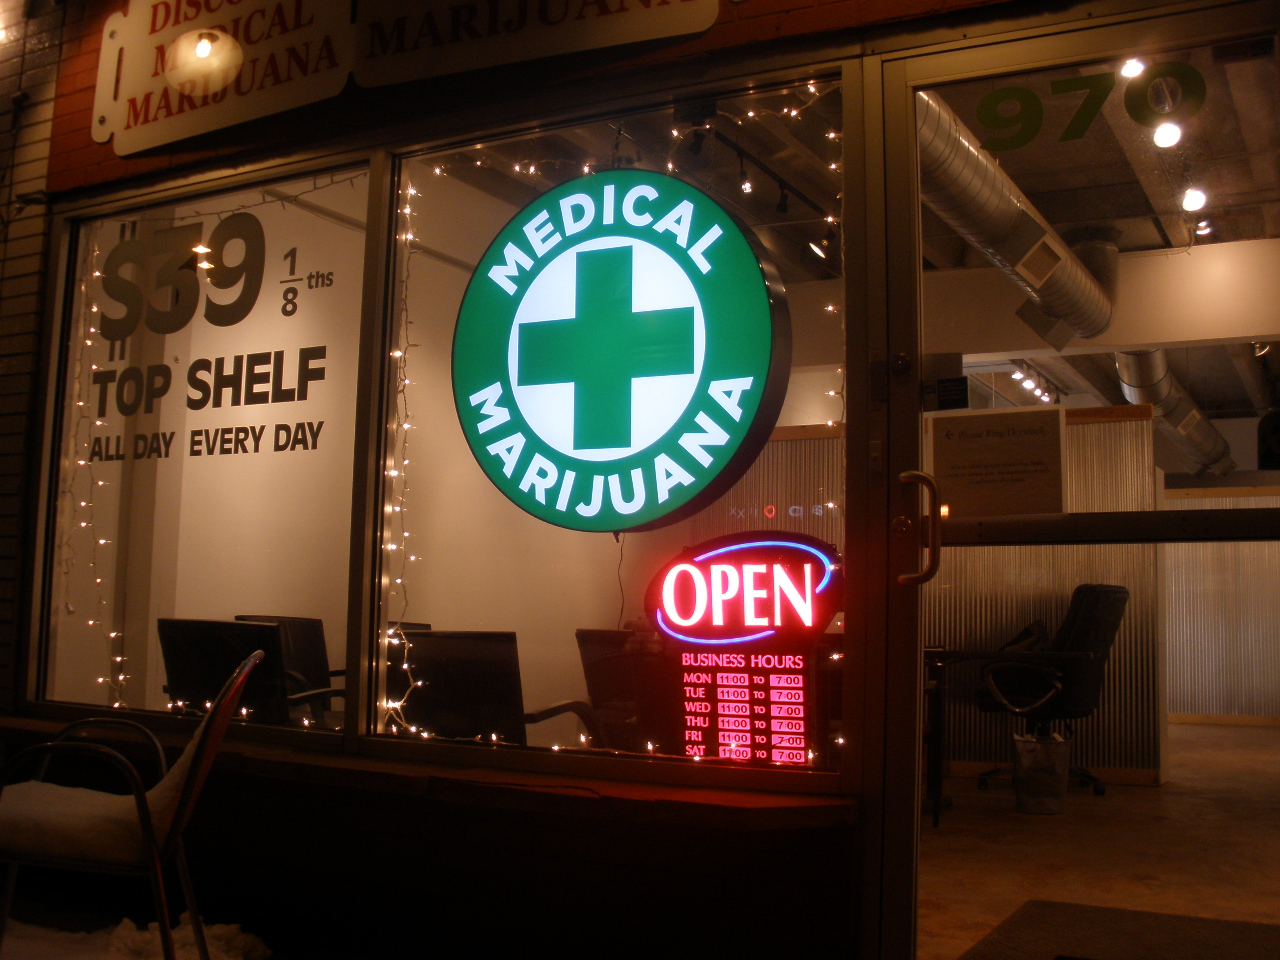 Medical marijuana dispensary in Denver.